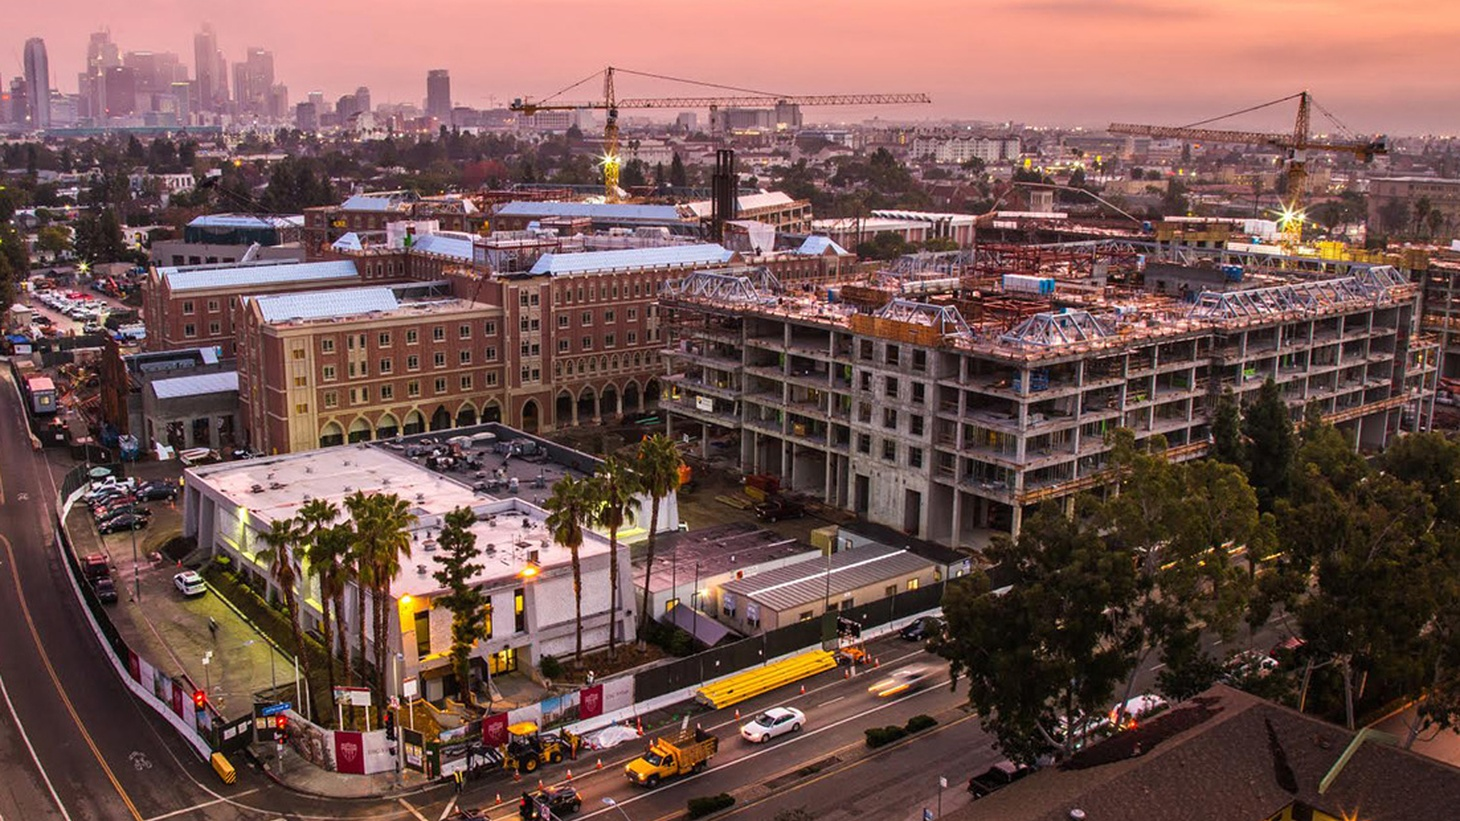 Several large developments are under construction south of the 10 Freeway, and some have initiatives to fill jobs with local, low-income workers. See how that can become a life-changing opportunity for job seekers burdened with a prison record.